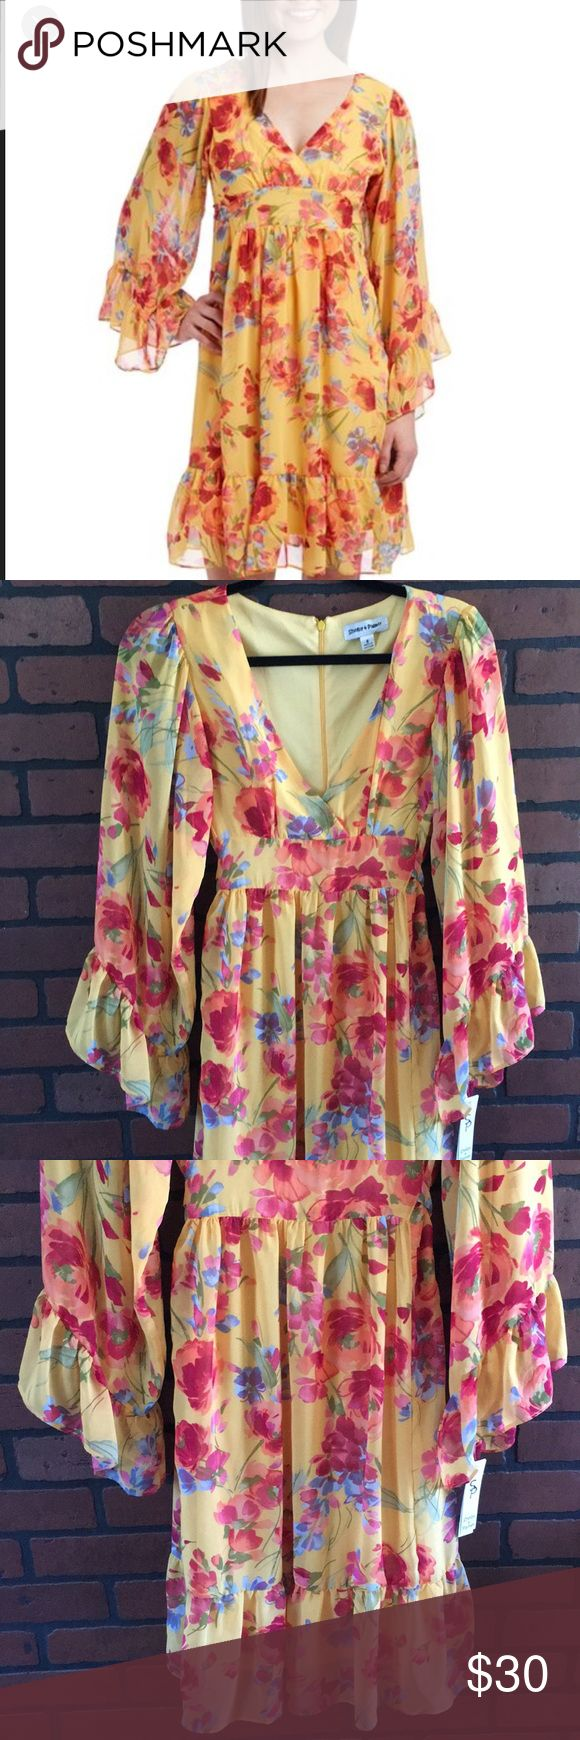 """Shelby & Palmer dress💛 NWT💛 flowy bell sleeve dress💛 Golden with floral print💛 back zip back tie💛 dress is lined 💛sleeves are sheer💛 material is 100% polyester💛 armpit to armpit measures approx 15.5"""" 💛 shoulder to bottom measures approx 38"""" Shelby & Palmer Dresses Midi"""